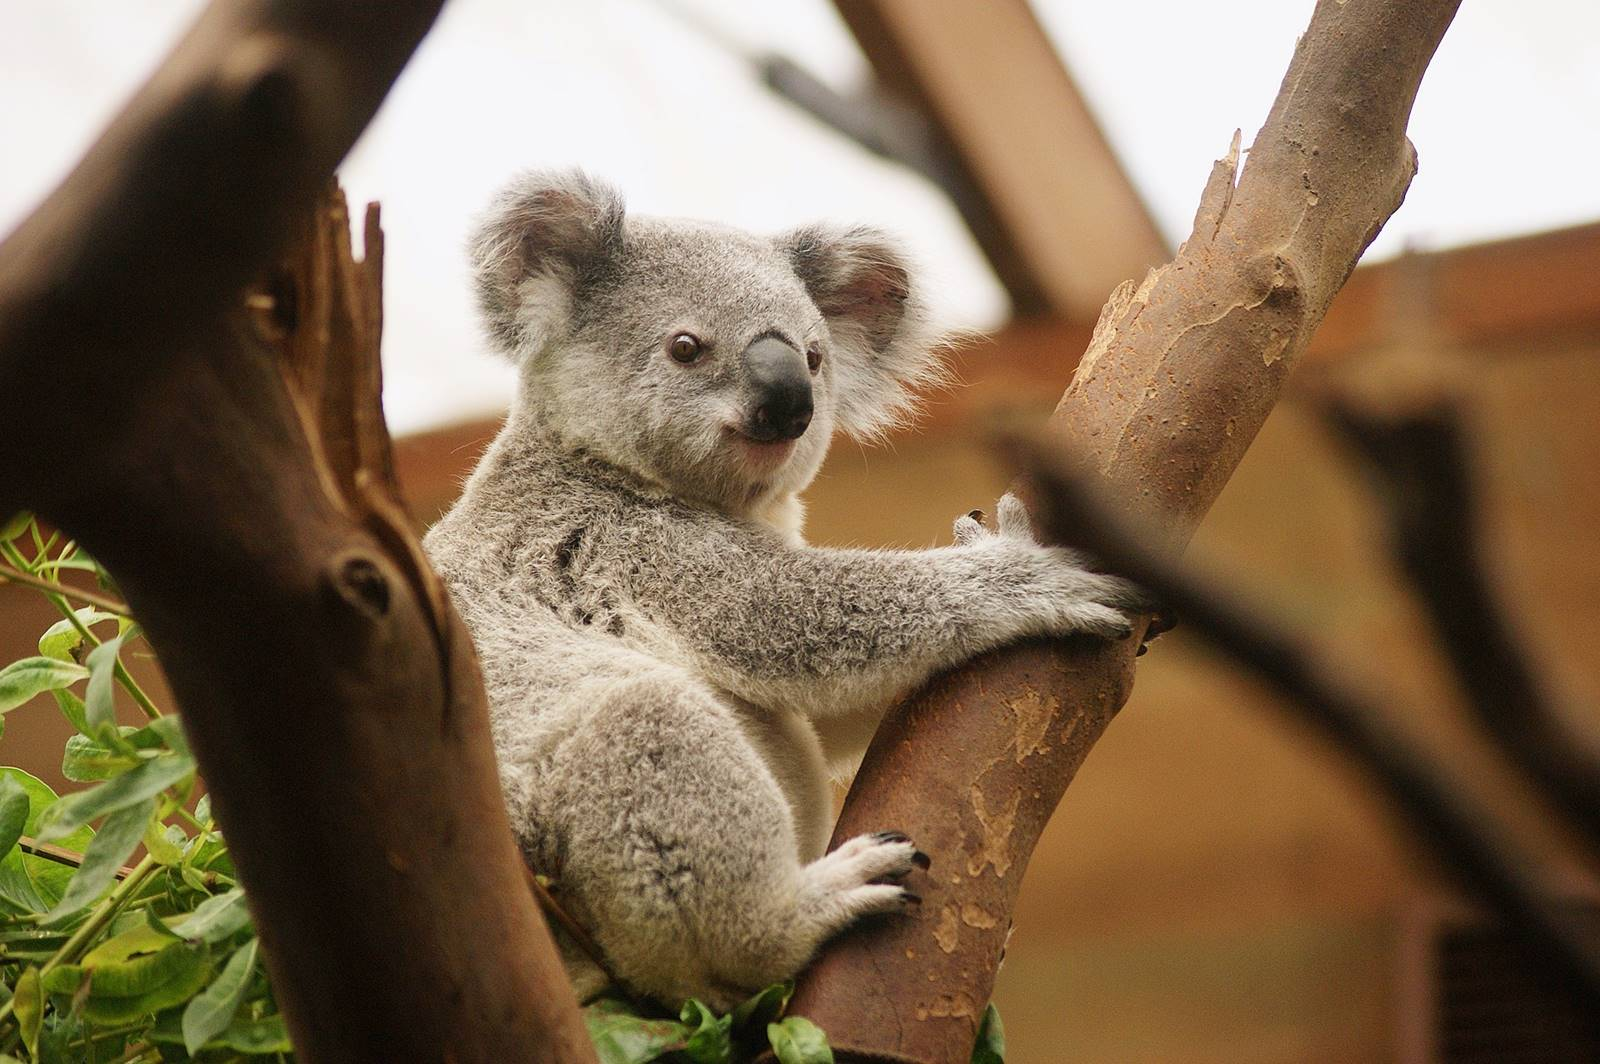 Melbourne-Melbourne Zoo-CBD-Attraction-Recommendation-Map-Itinerary-Tourism-Independent Travel-Travel Blog-Must visit-Must See